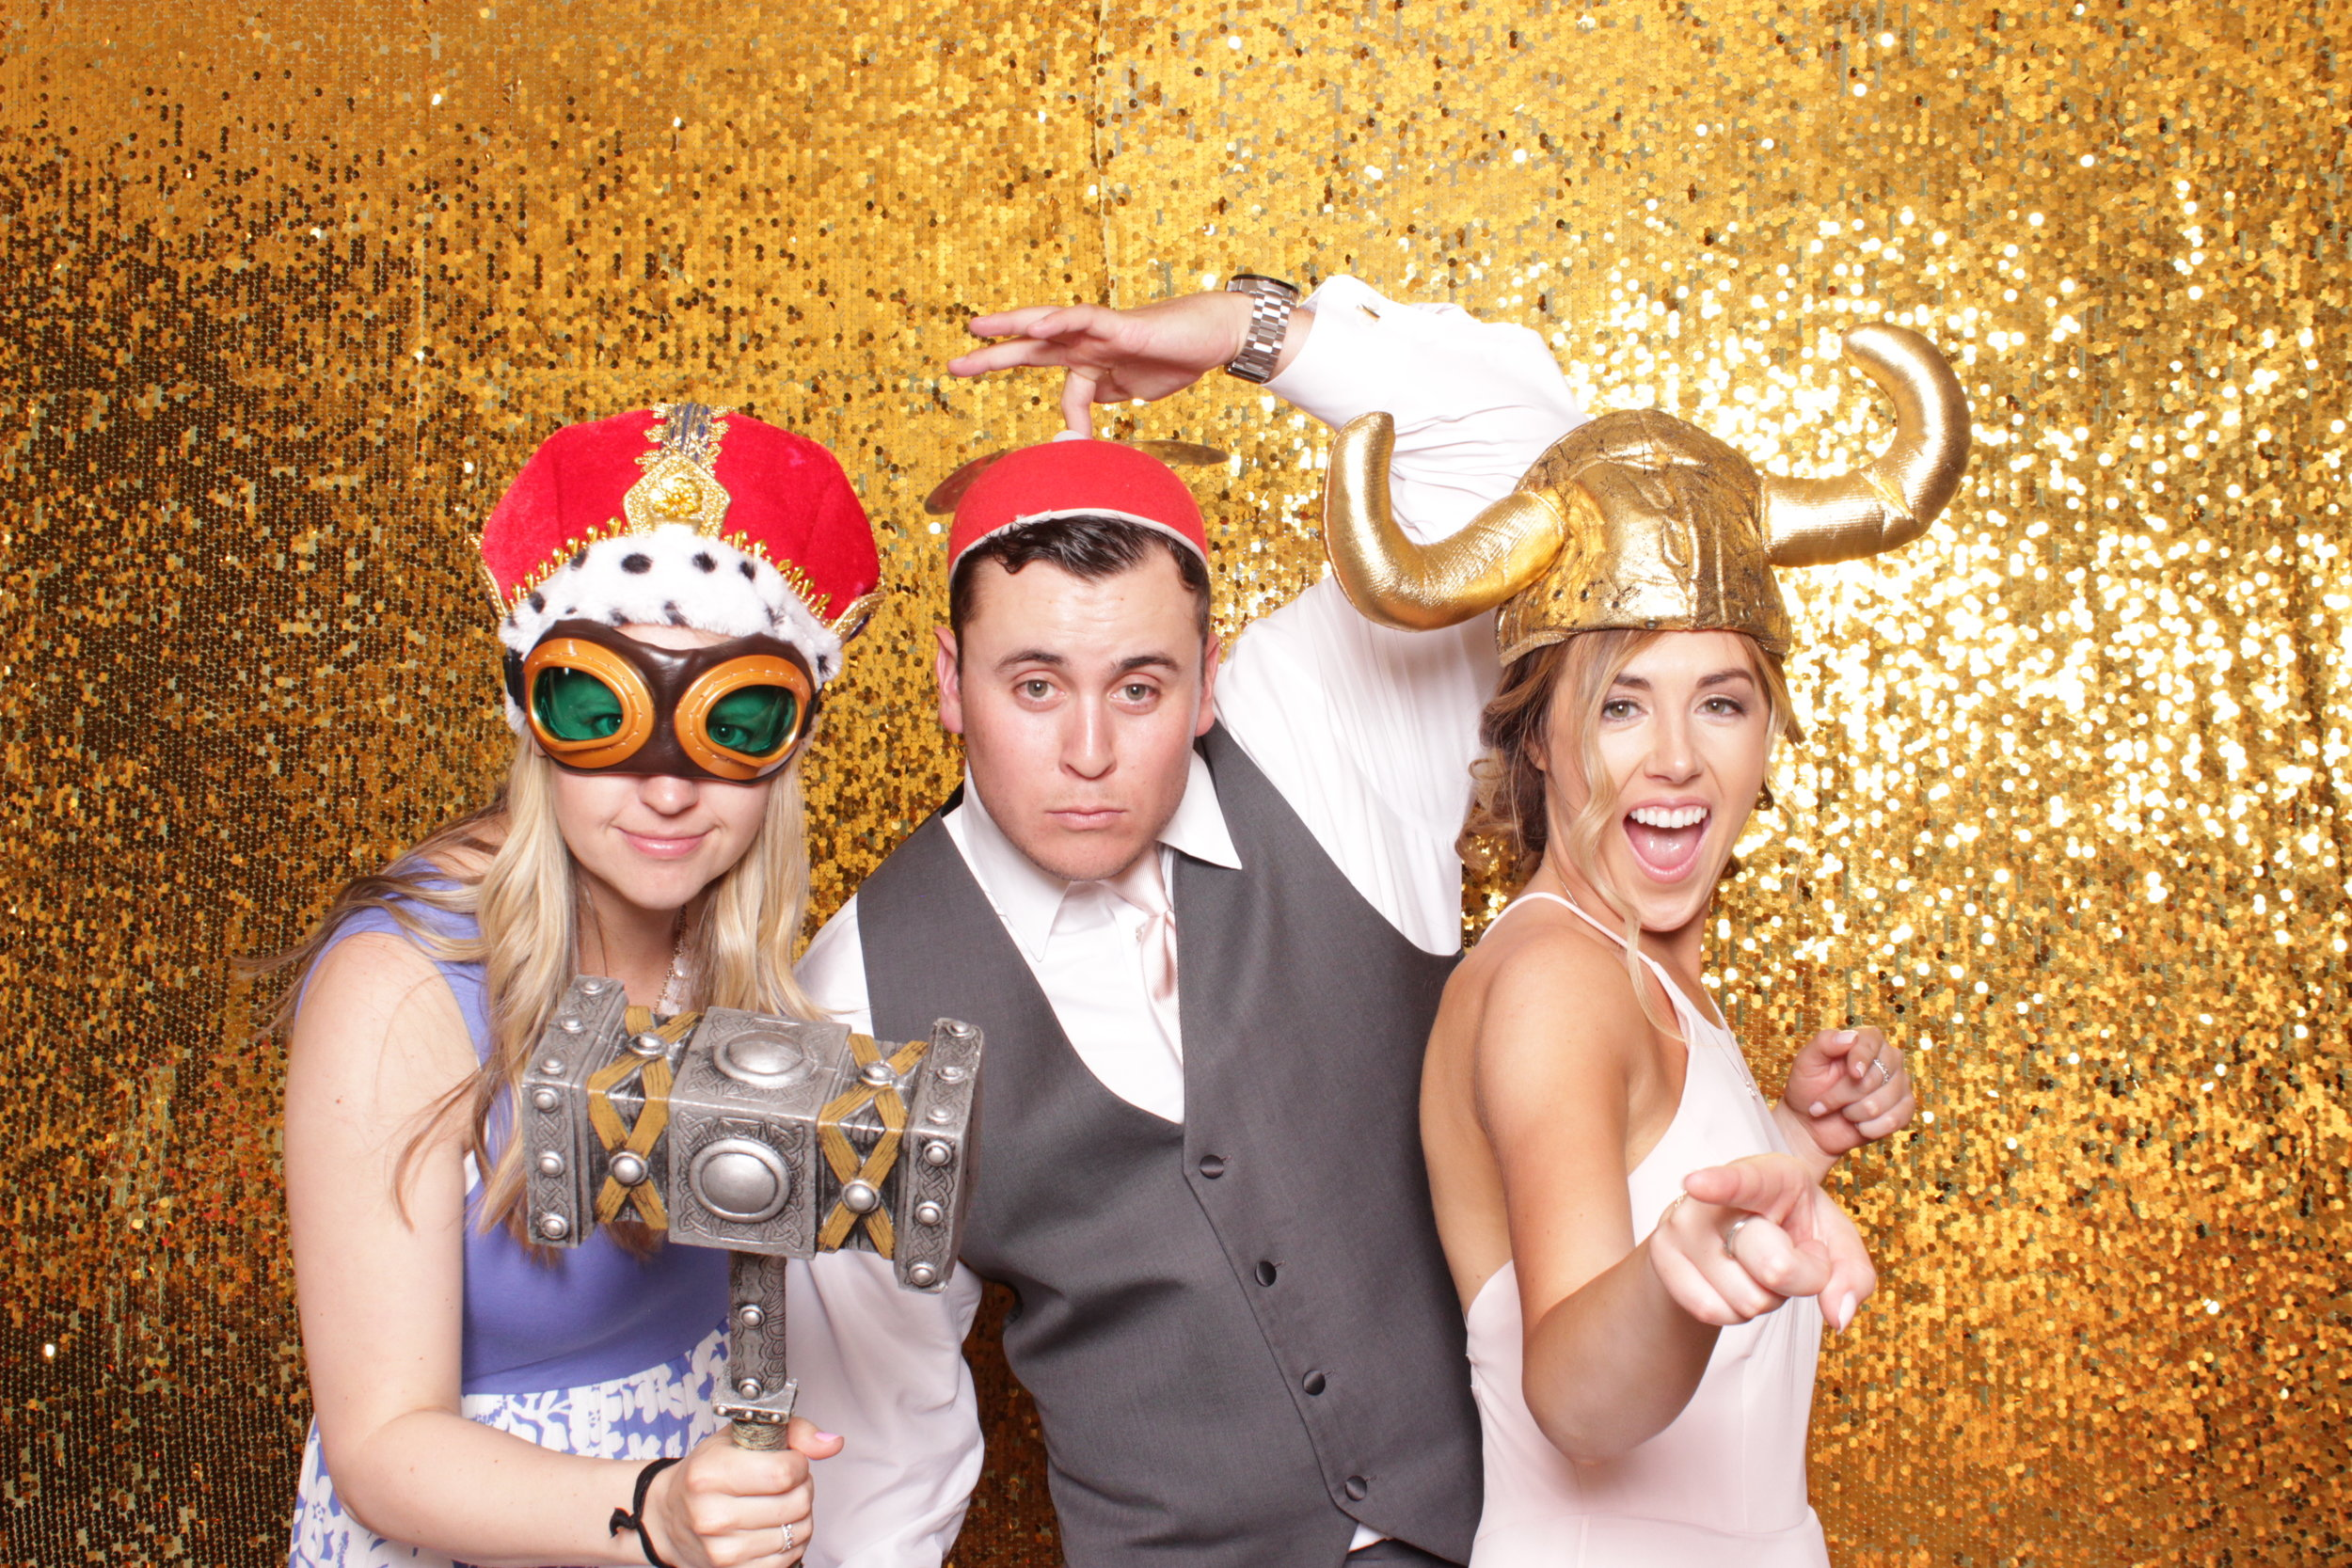 butte-creek-country-club-photo-booth-rental.JPG